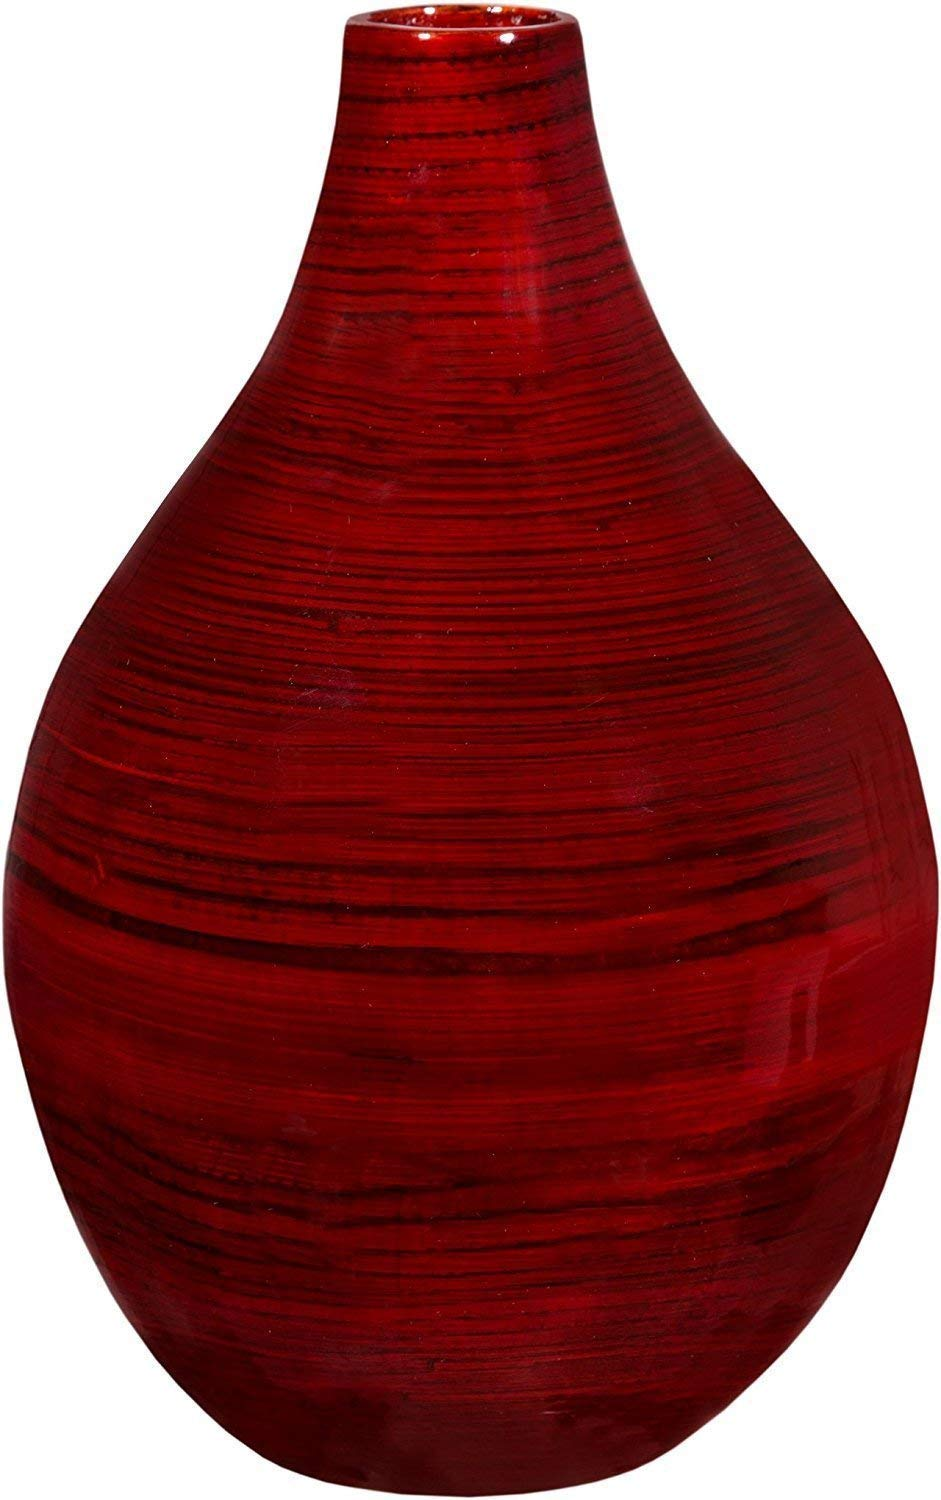 Decorative vase for home décor by Emenest|Holiday Party Table Centerpiece | Real Painted Bamboo Wood Accent Piece | Deep Red Color |Lightweight Yet Sturdy for Home or Office | Best Housewarming Gift